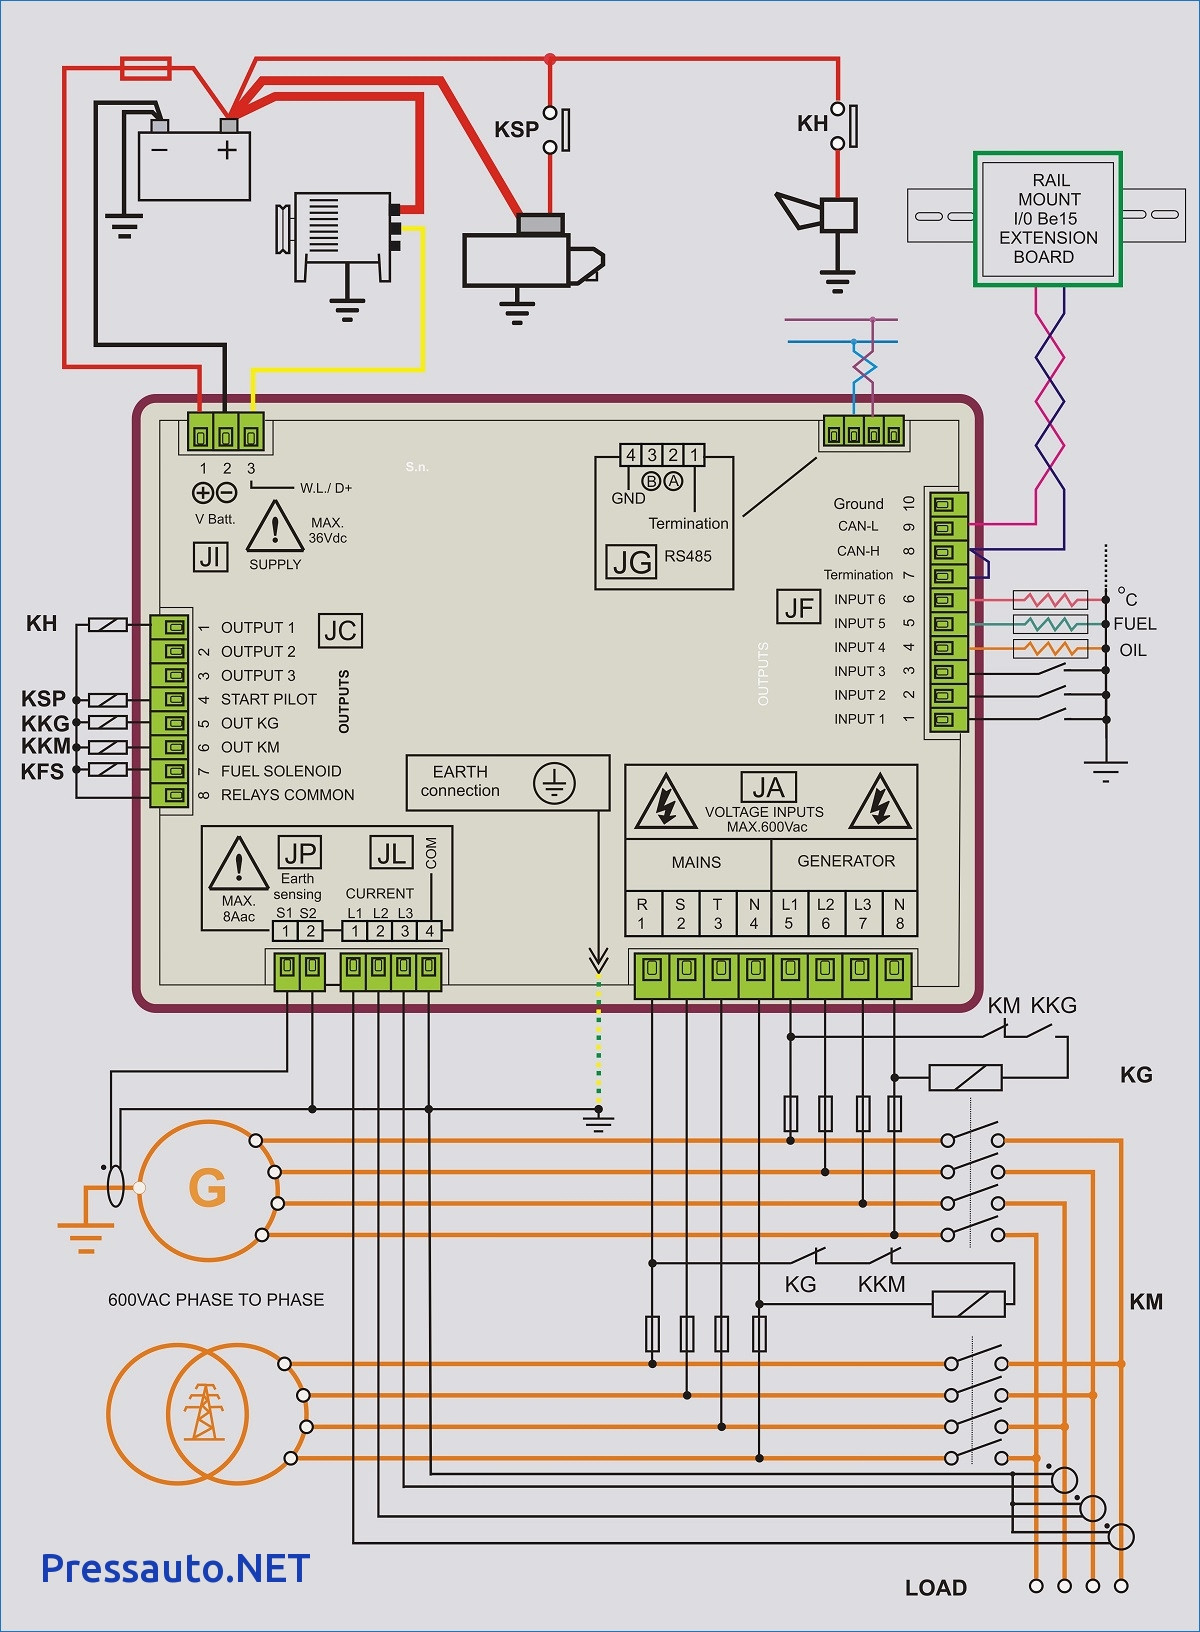 generac 200 amp automatic transfer switch wiring diagram. Black Bedroom Furniture Sets. Home Design Ideas